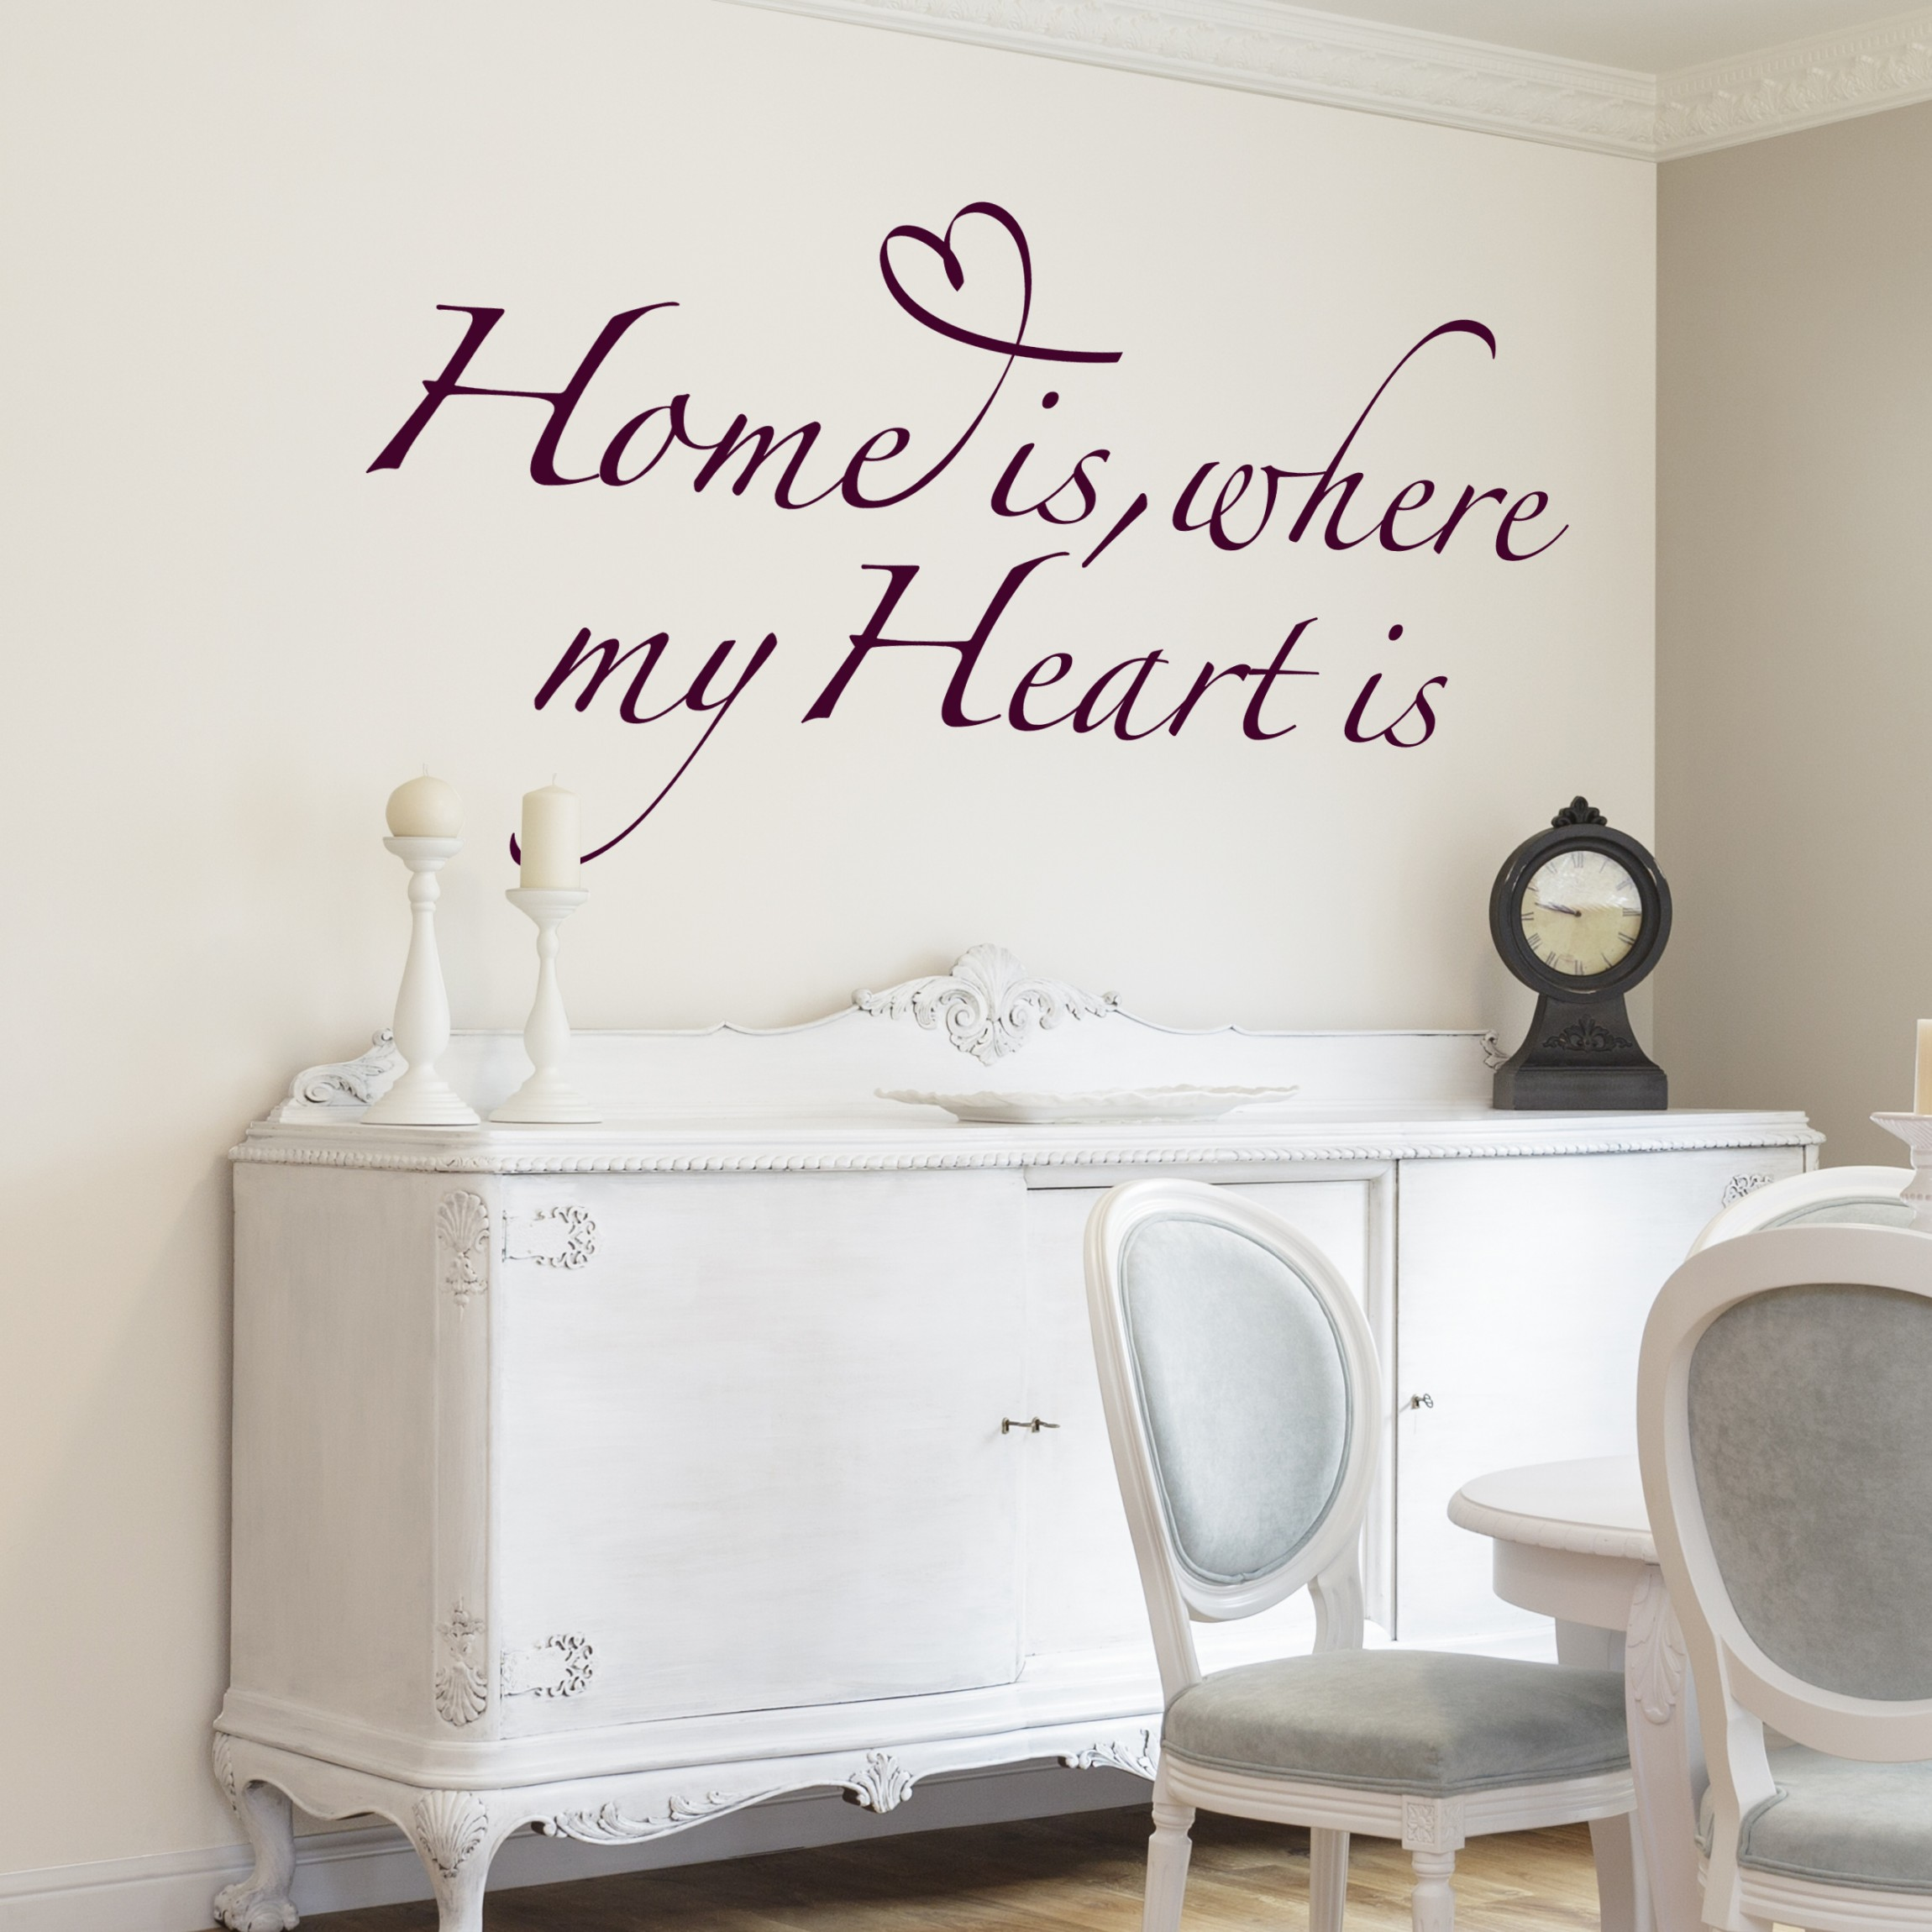 Wandtattoo spr che wandspr che no br255 home is where my heart is - Wandtattoo spruche ...